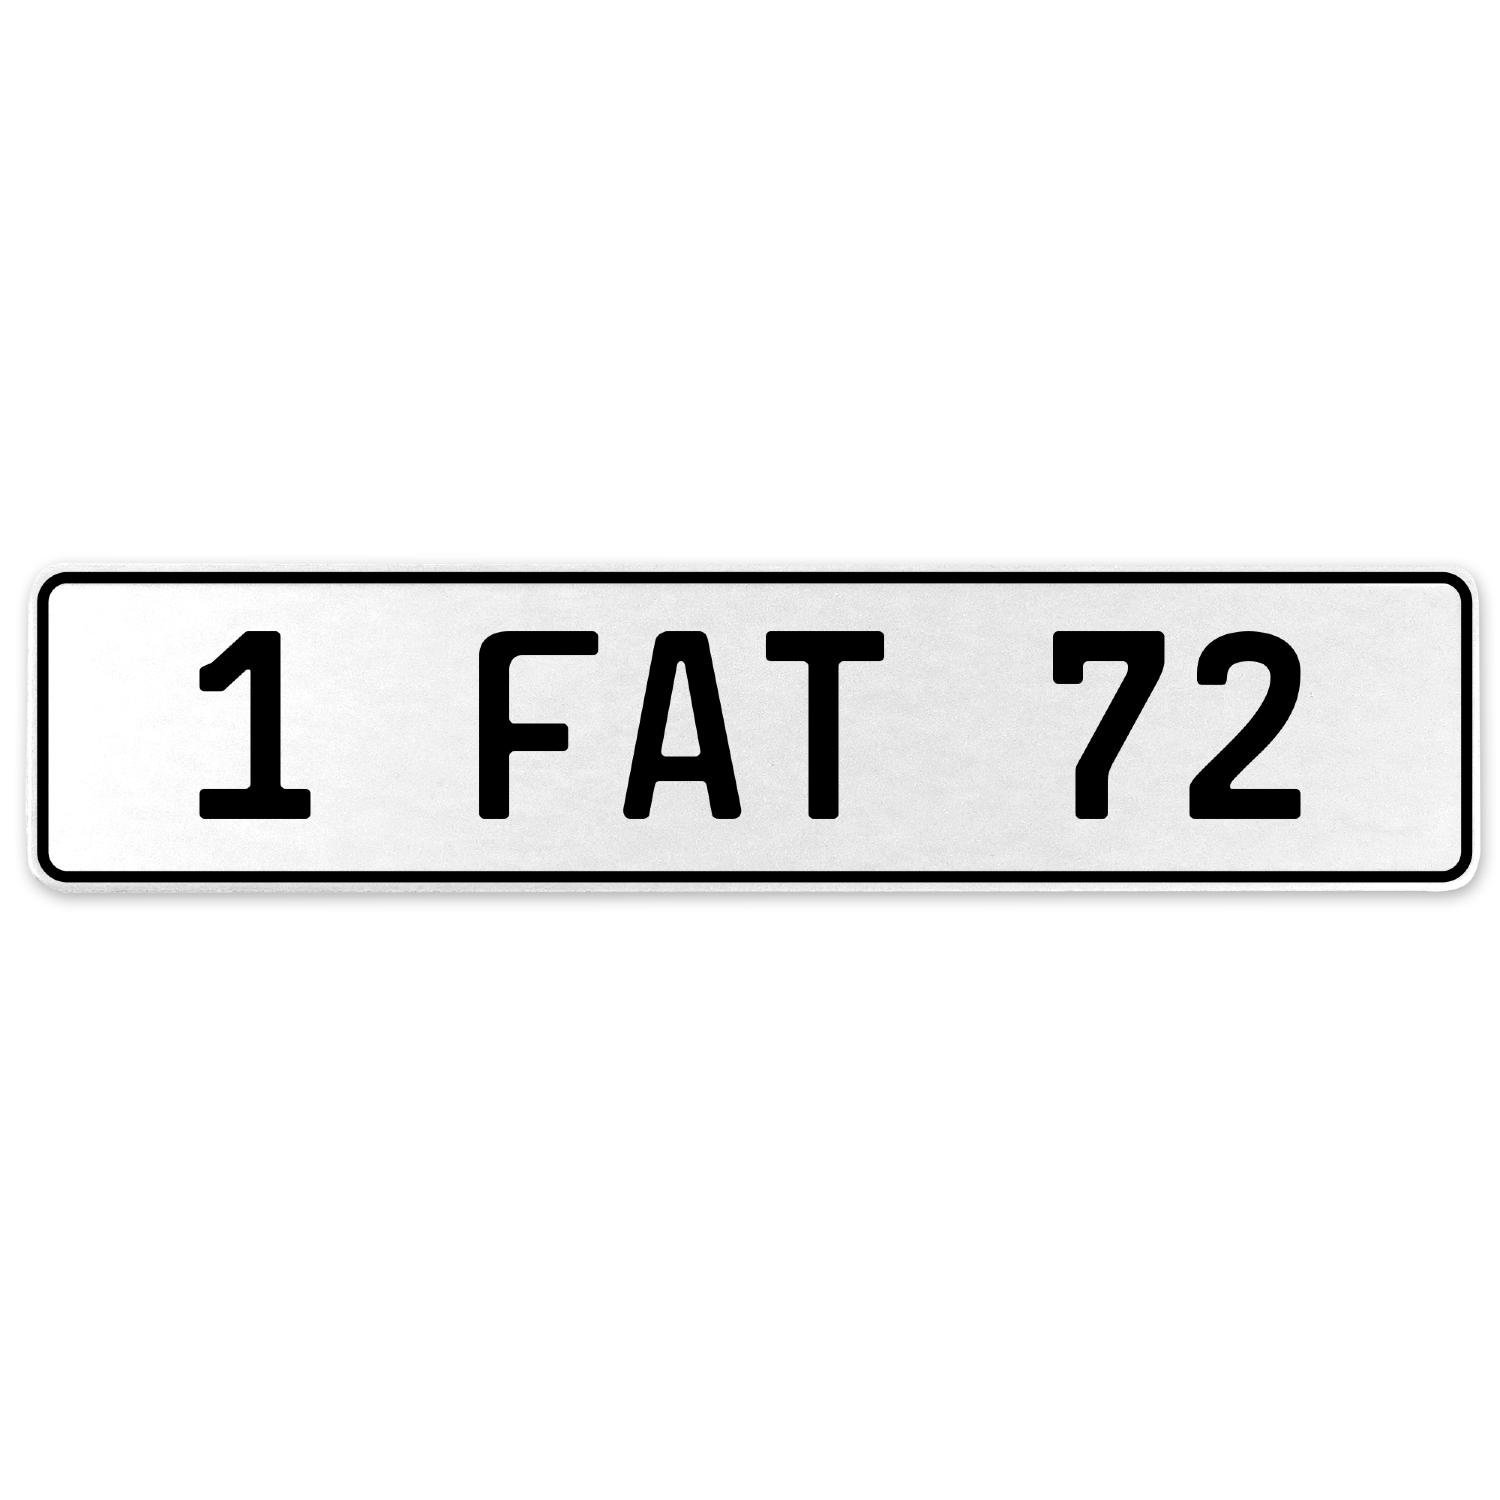 Vintage Parts 554669 1 Fat 72 White Stamped Aluminum European License Plate